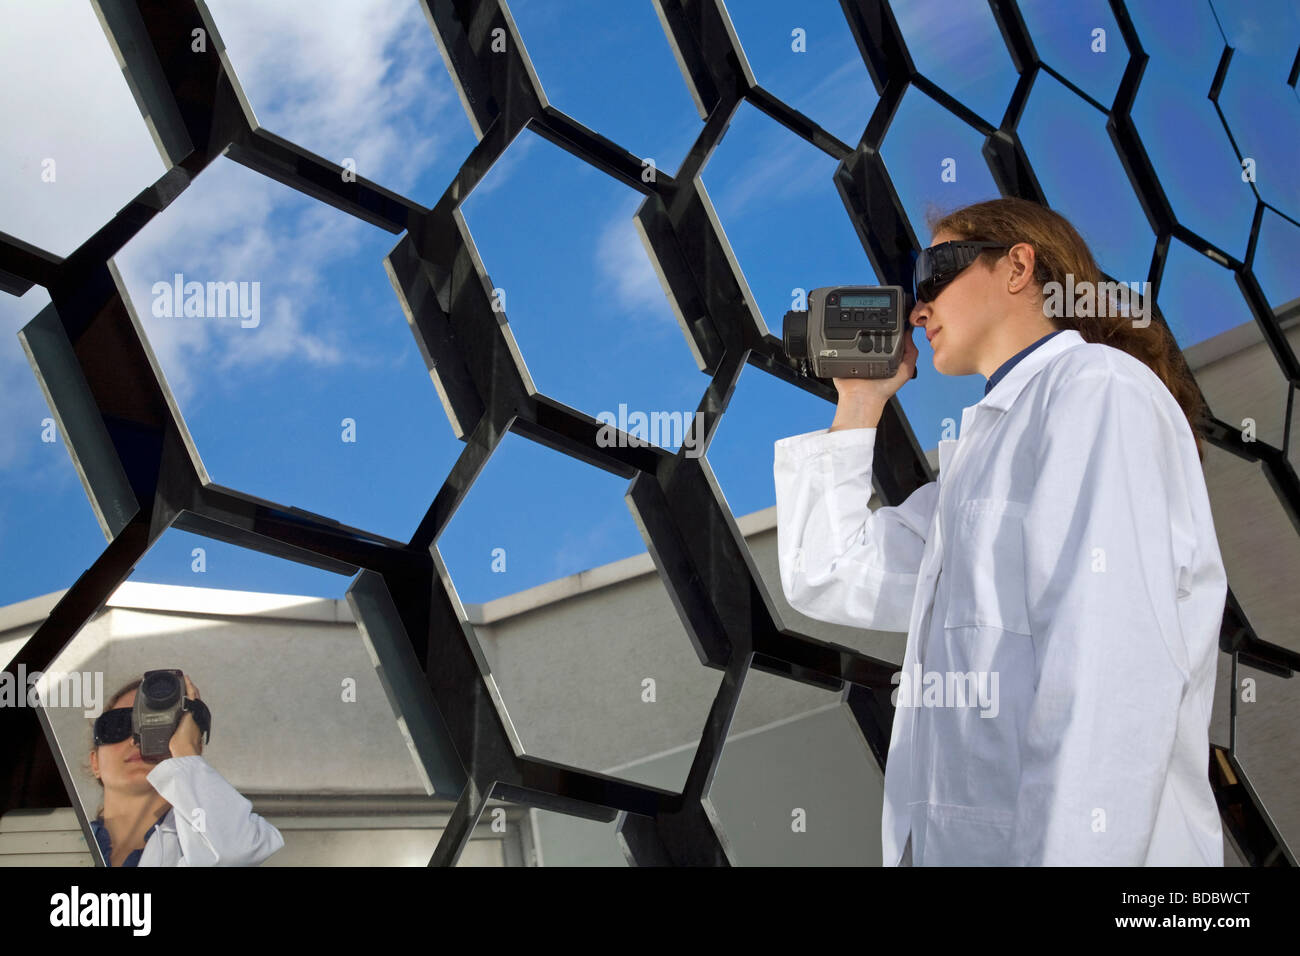 Institute of Technical Thermodynamics (DLR) – research on solar energy, Cologne, Germany - Stock Image